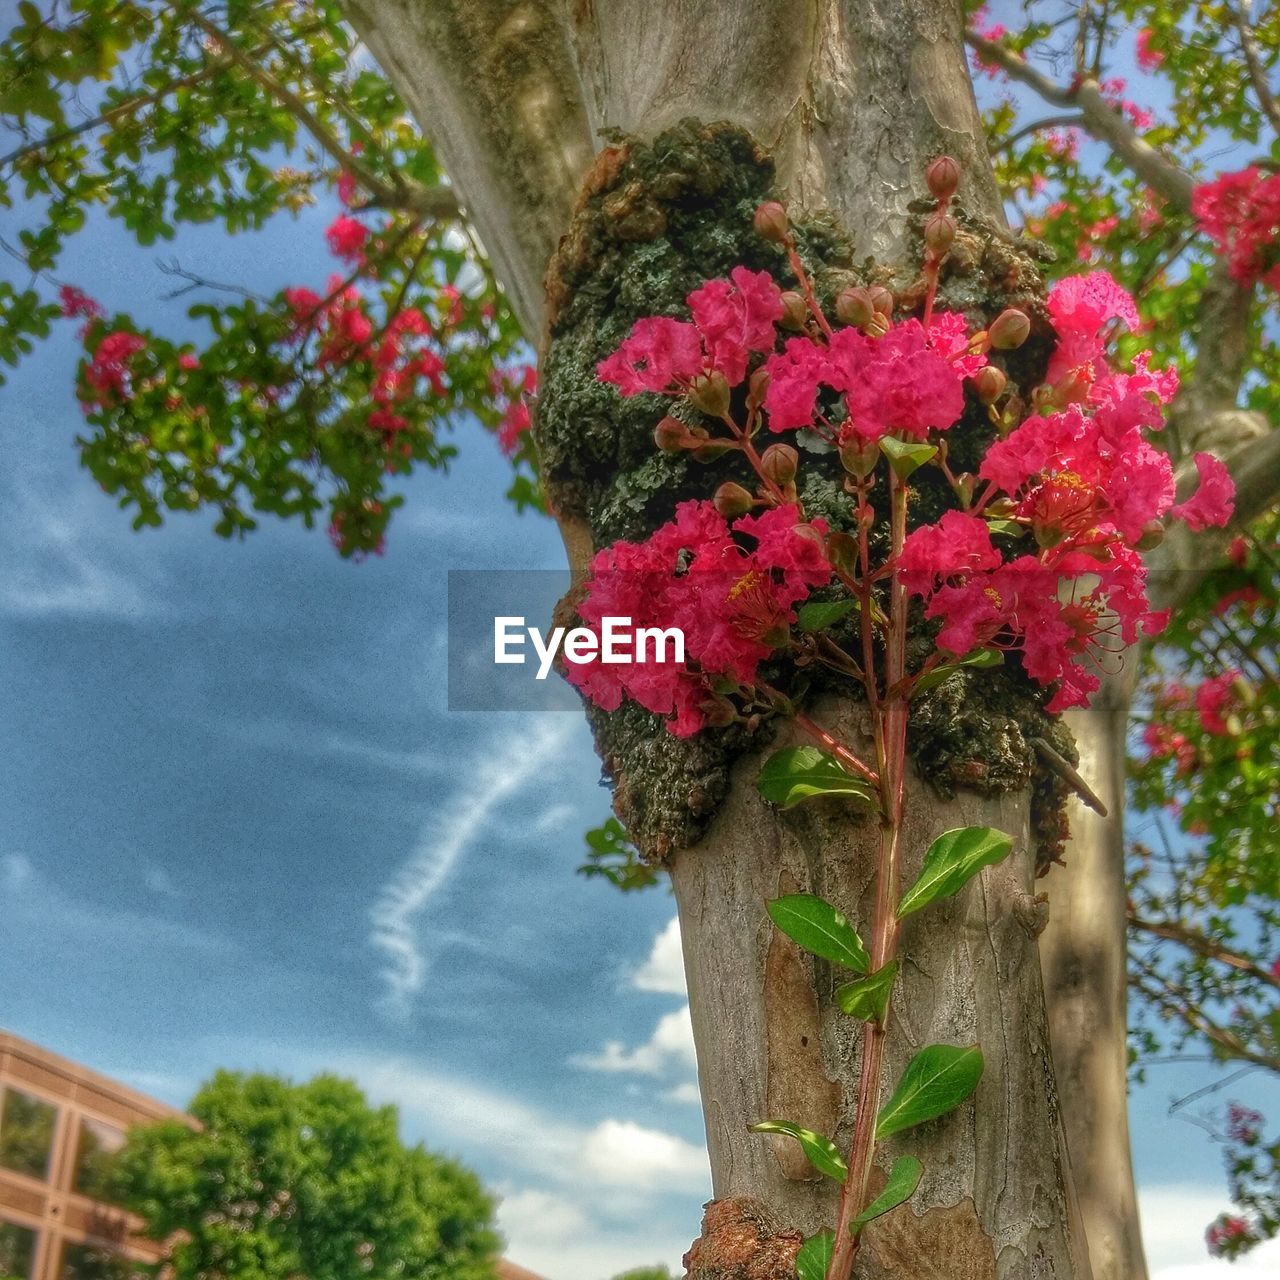 flower, tree, growth, nature, beauty in nature, plant, fragility, tree trunk, day, no people, outdoors, leaf, branch, freshness, blooming, focus on foreground, low angle view, close-up, sky, architecture, flower head